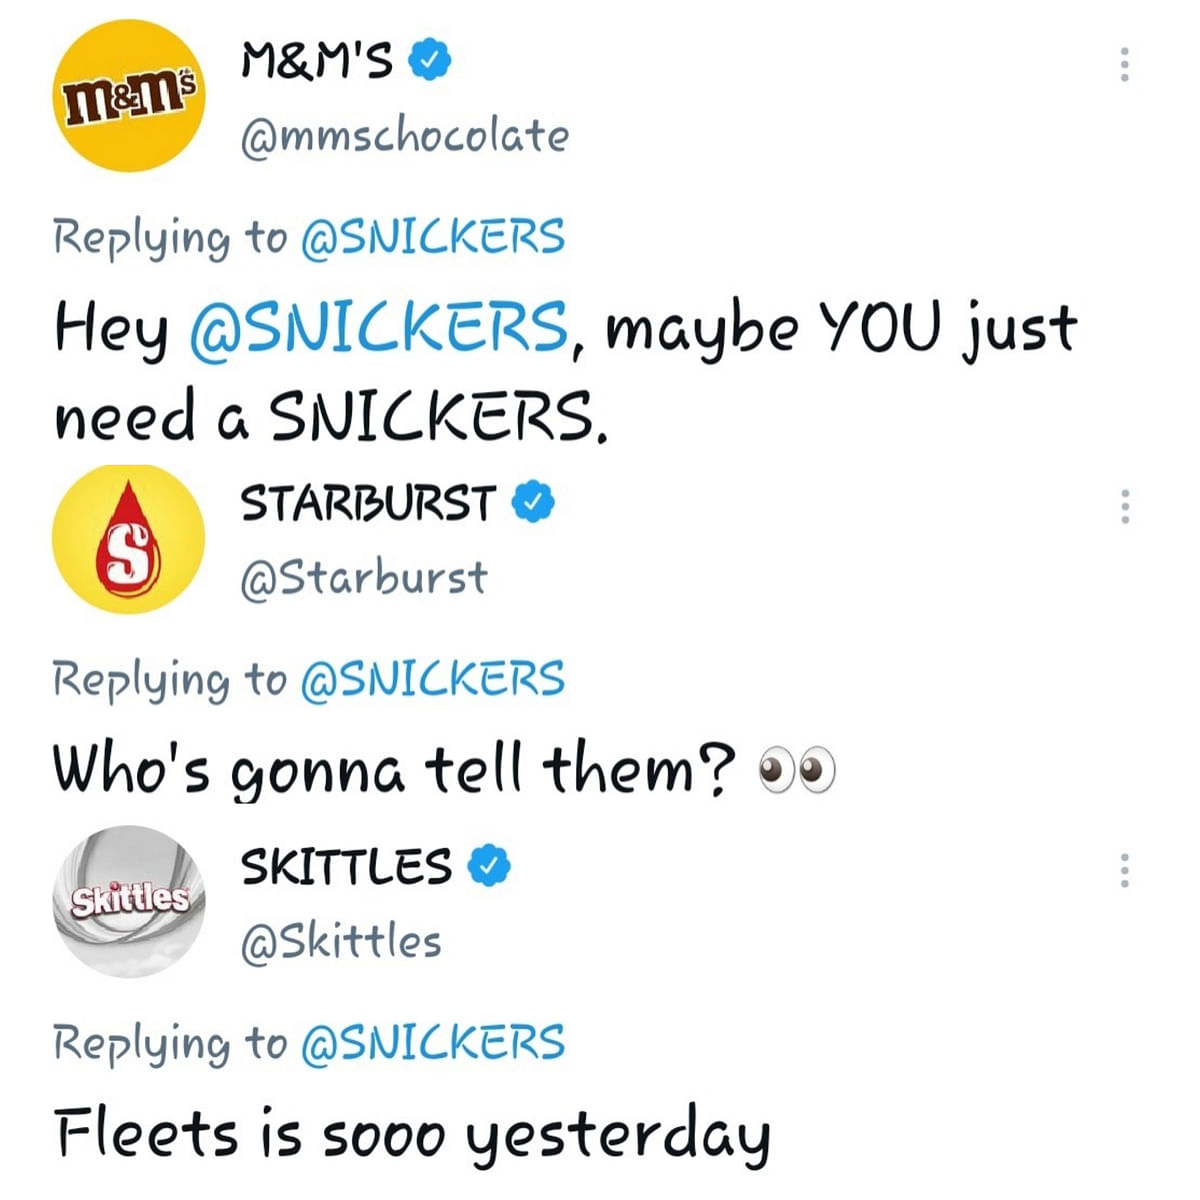 Offering sweepstakes on Twitter's Fleets, Snickers makes the most of the dying feature